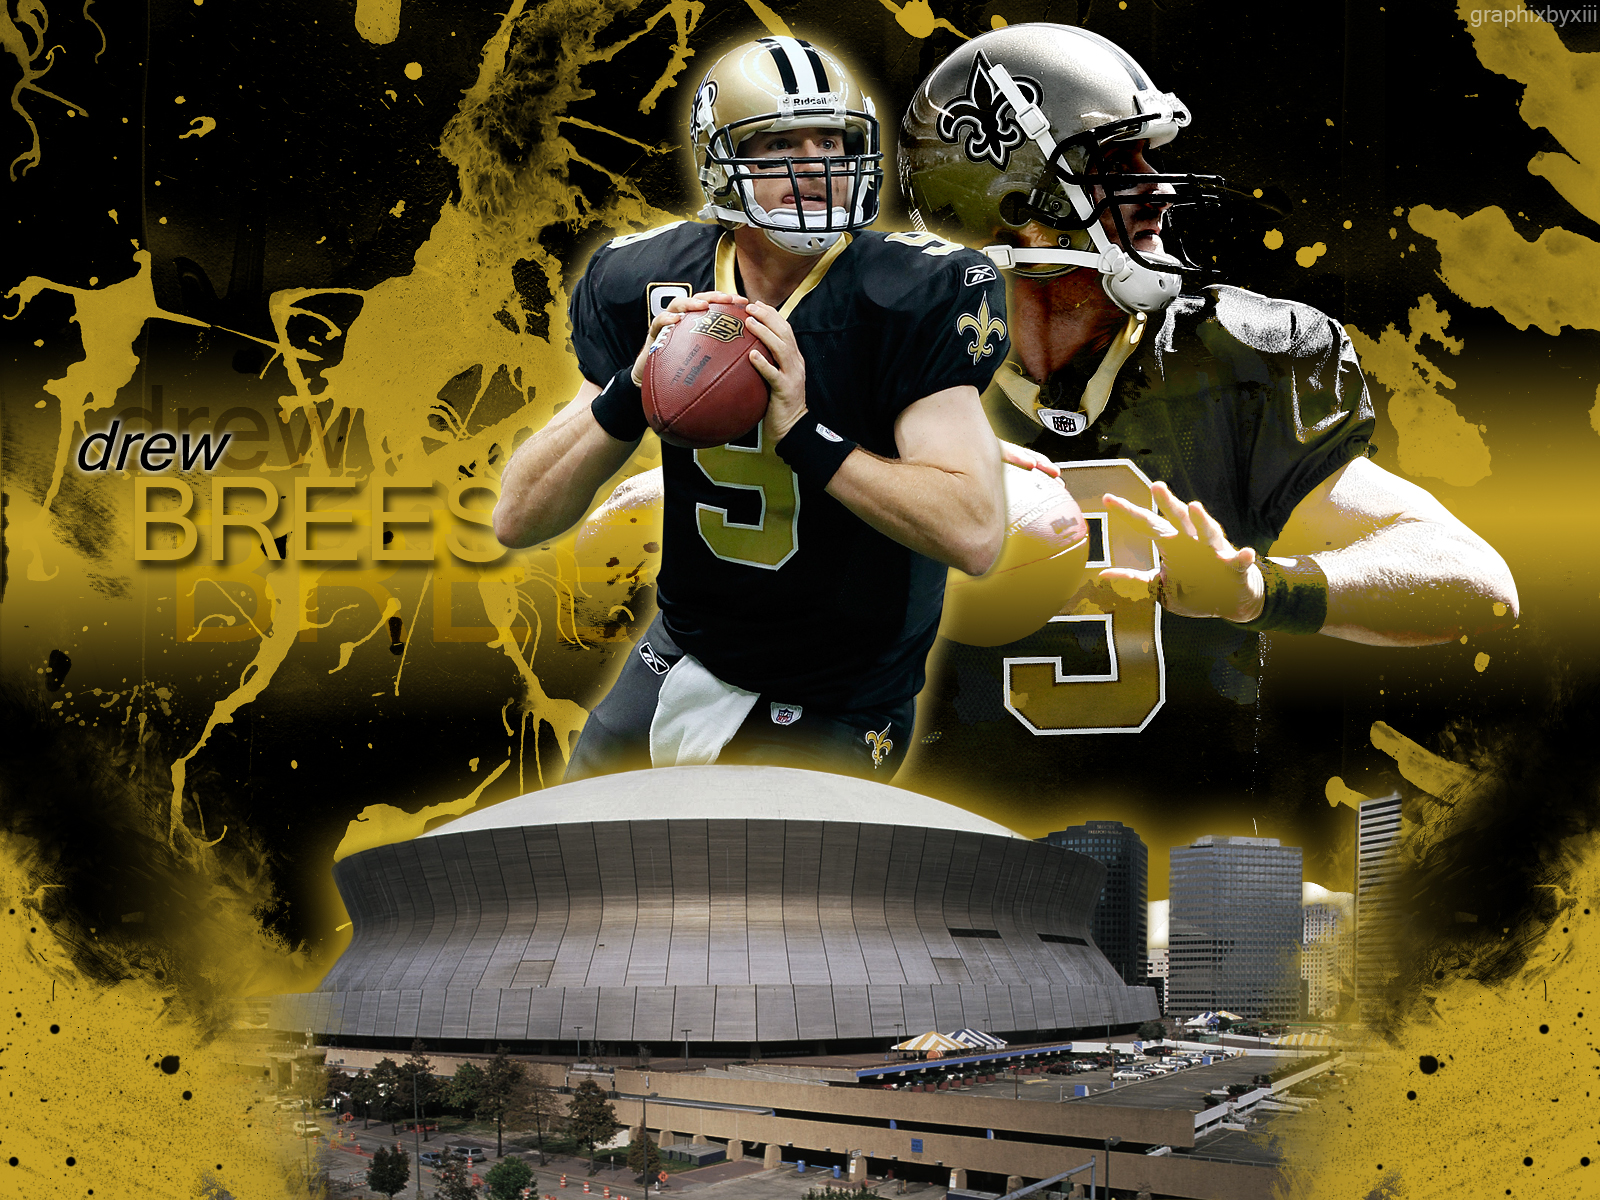 Drew Brees wallpaper graphixbyxiii 1600x1200